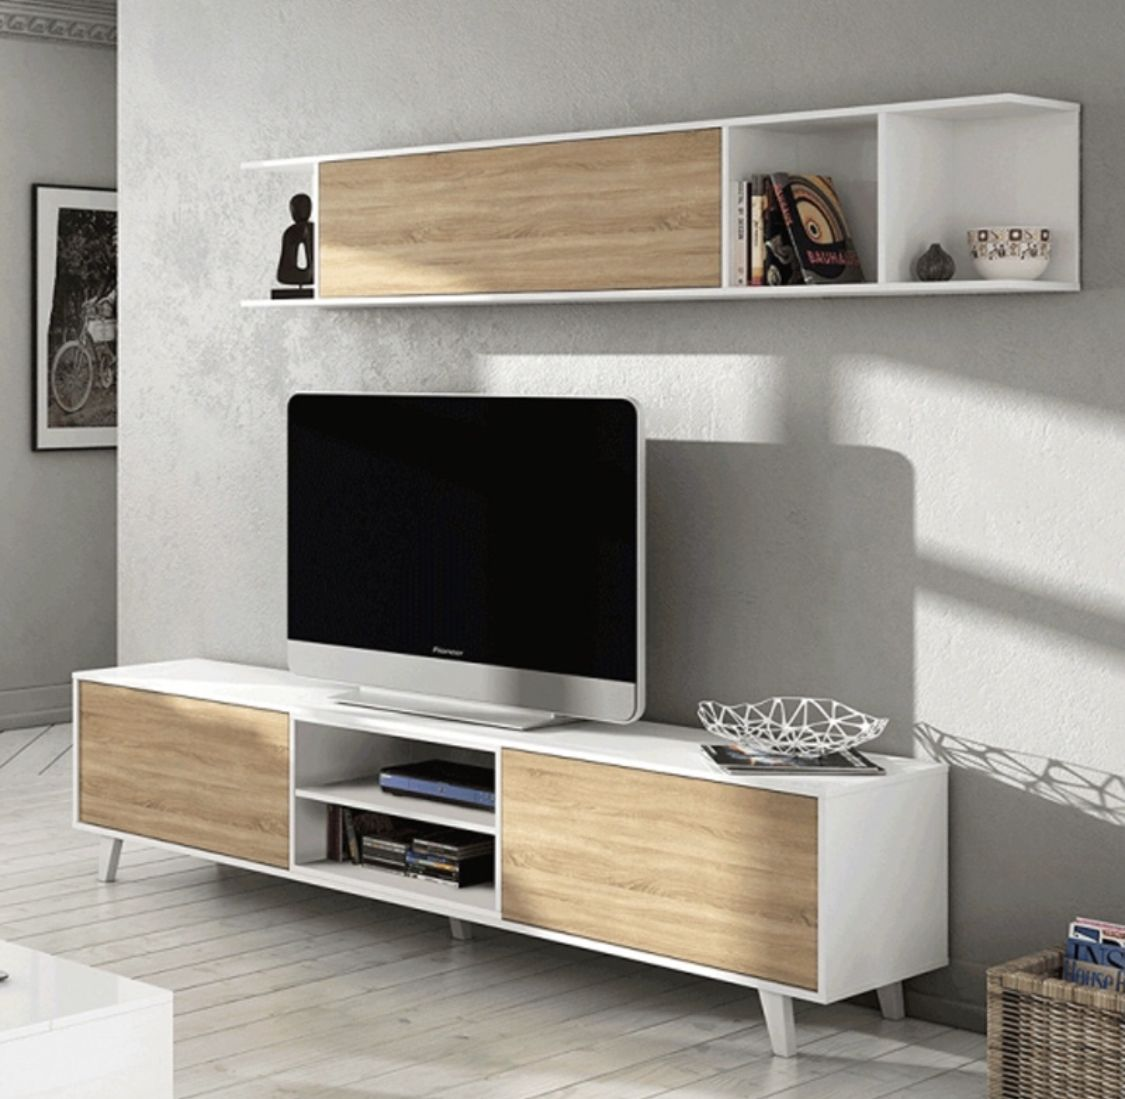 30 Modern Tv Wall Units To Get Inspired Decor Modern Tv Wall